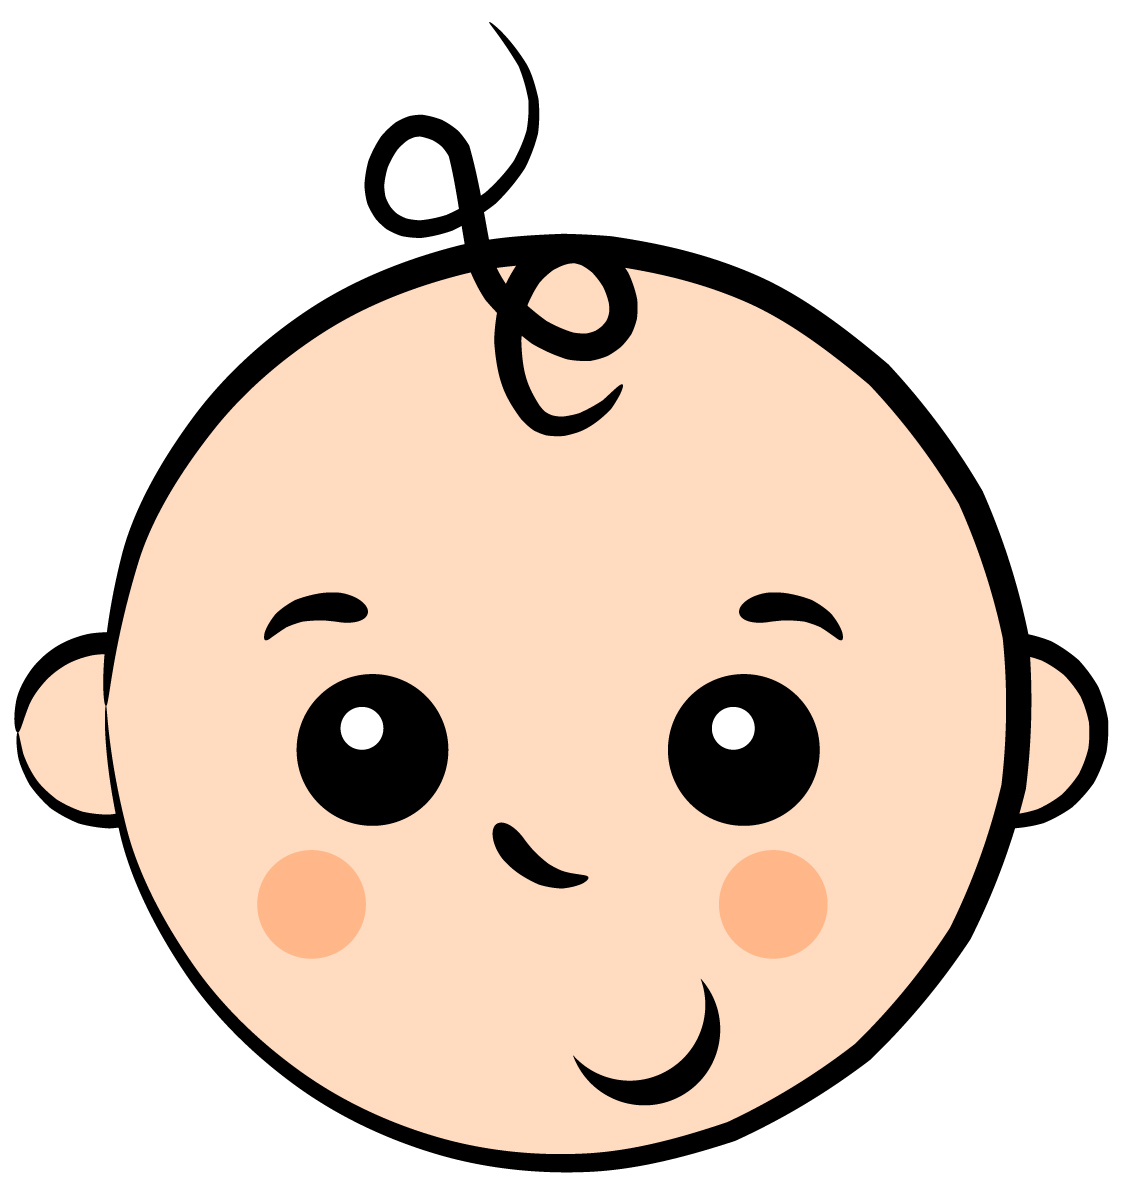 75 free baby clip art cliparting baby boy face clipart clipartcow buycottarizona Gallery